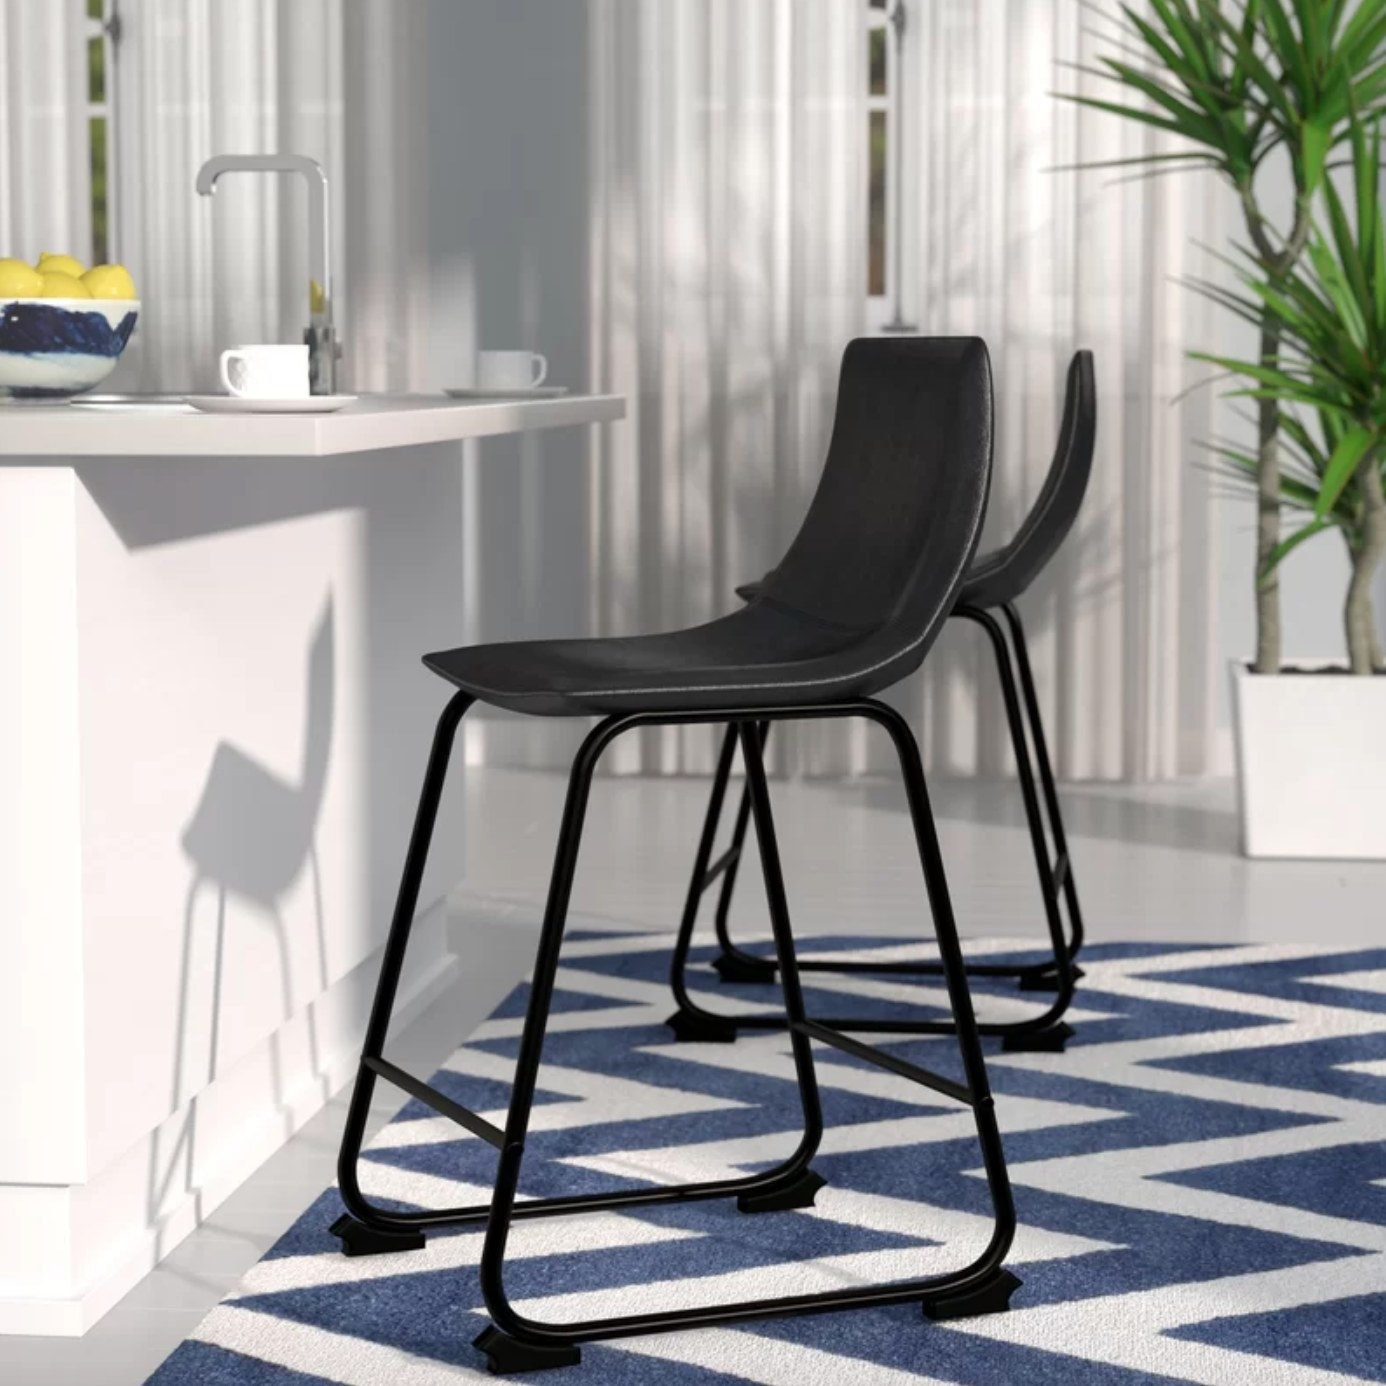 The set of counter chairs in black